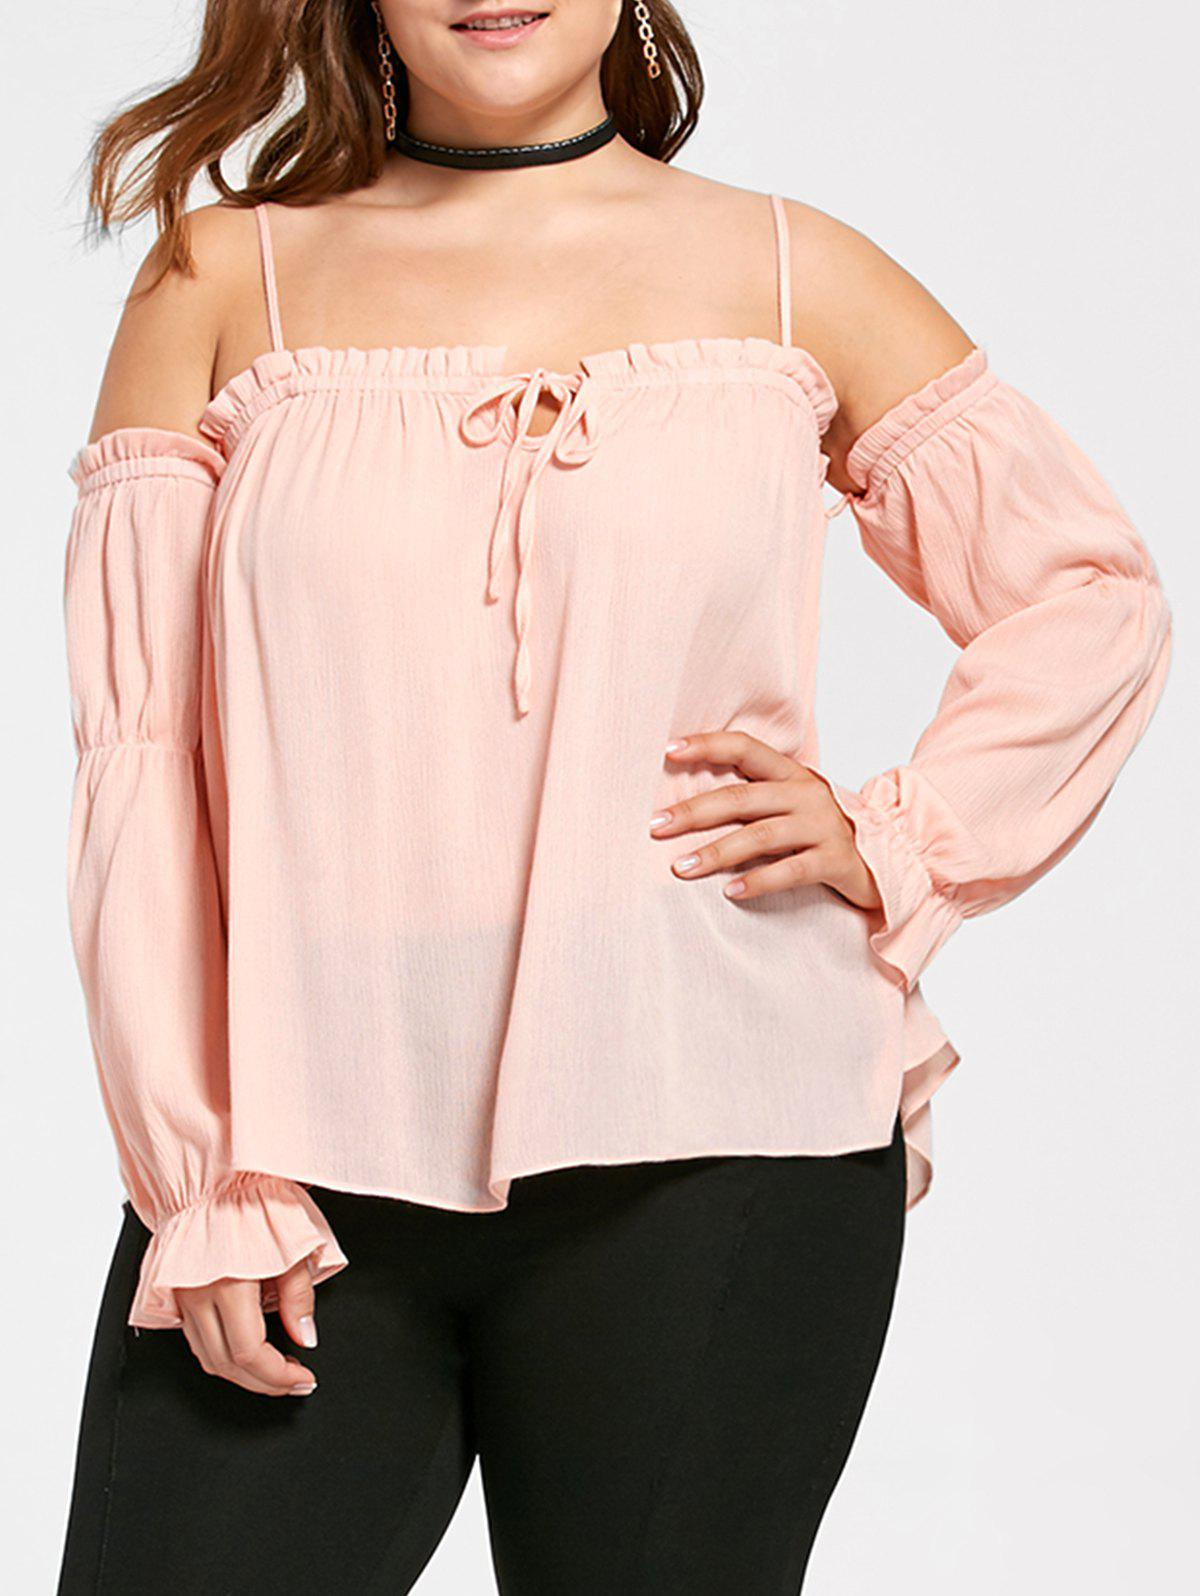 Plus Size Flounced Dew Shoulder BlouseWOMEN<br><br>Size: 2XL; Color: ORANGEPINK; Material: Rayon,Spandex; Shirt Length: Regular; Sleeve Length: Full; Collar: Spaghetti Strap; Style: Lolita; Season: Fall,Spring,Summer; Pattern Type: Solid; Weight: 0.2400kg; Package Contents: 1 x Blouse;